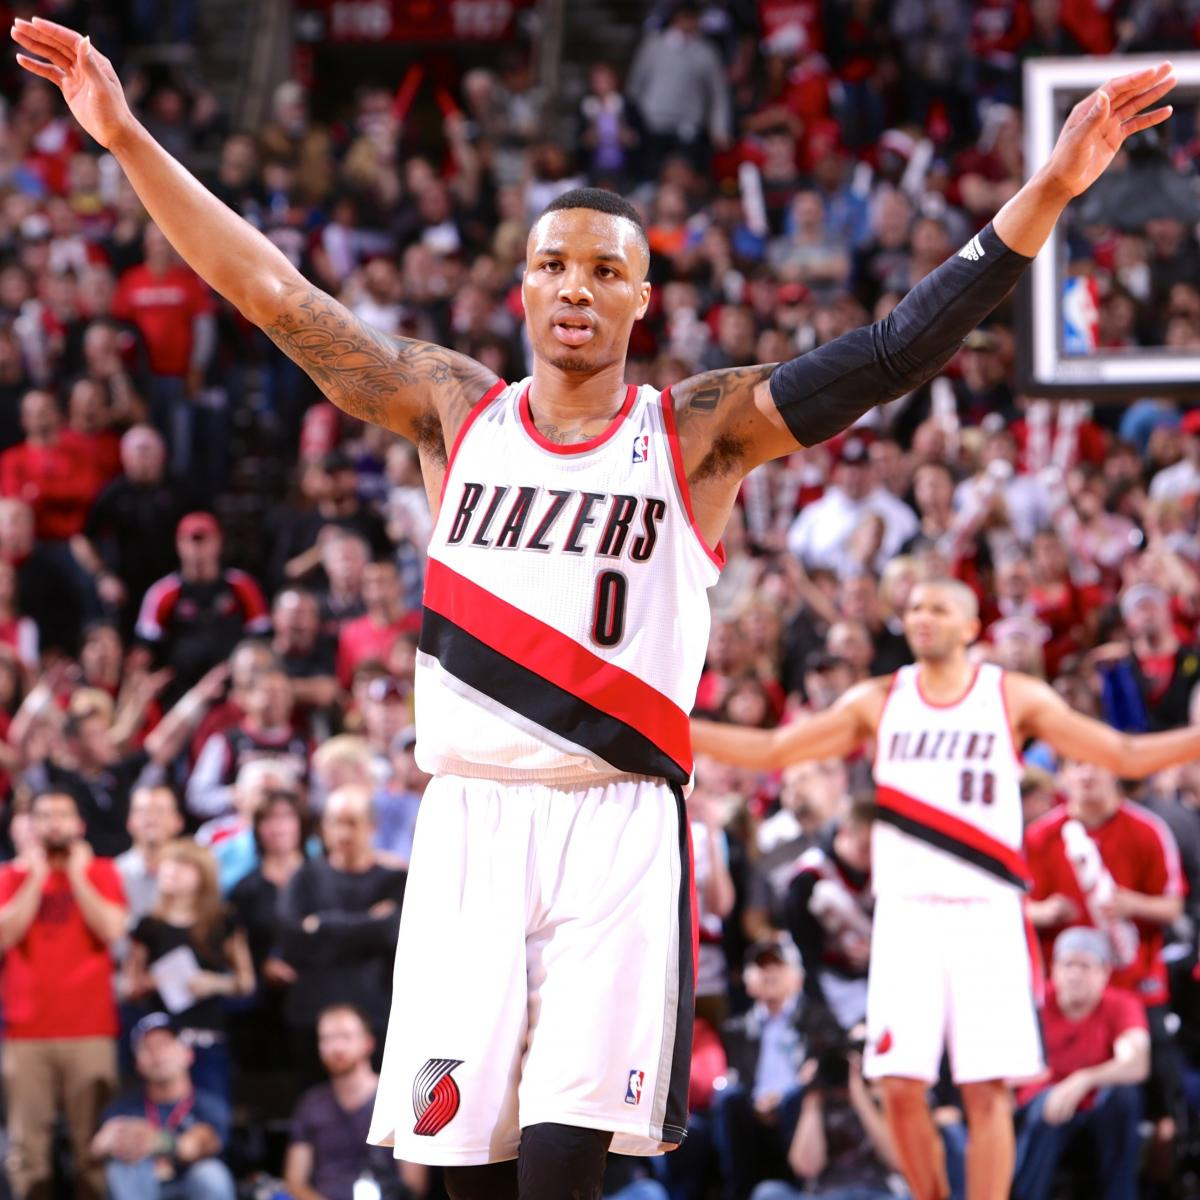 Rockets Vs. Blazers: Game 4 Score And Twitter Reaction